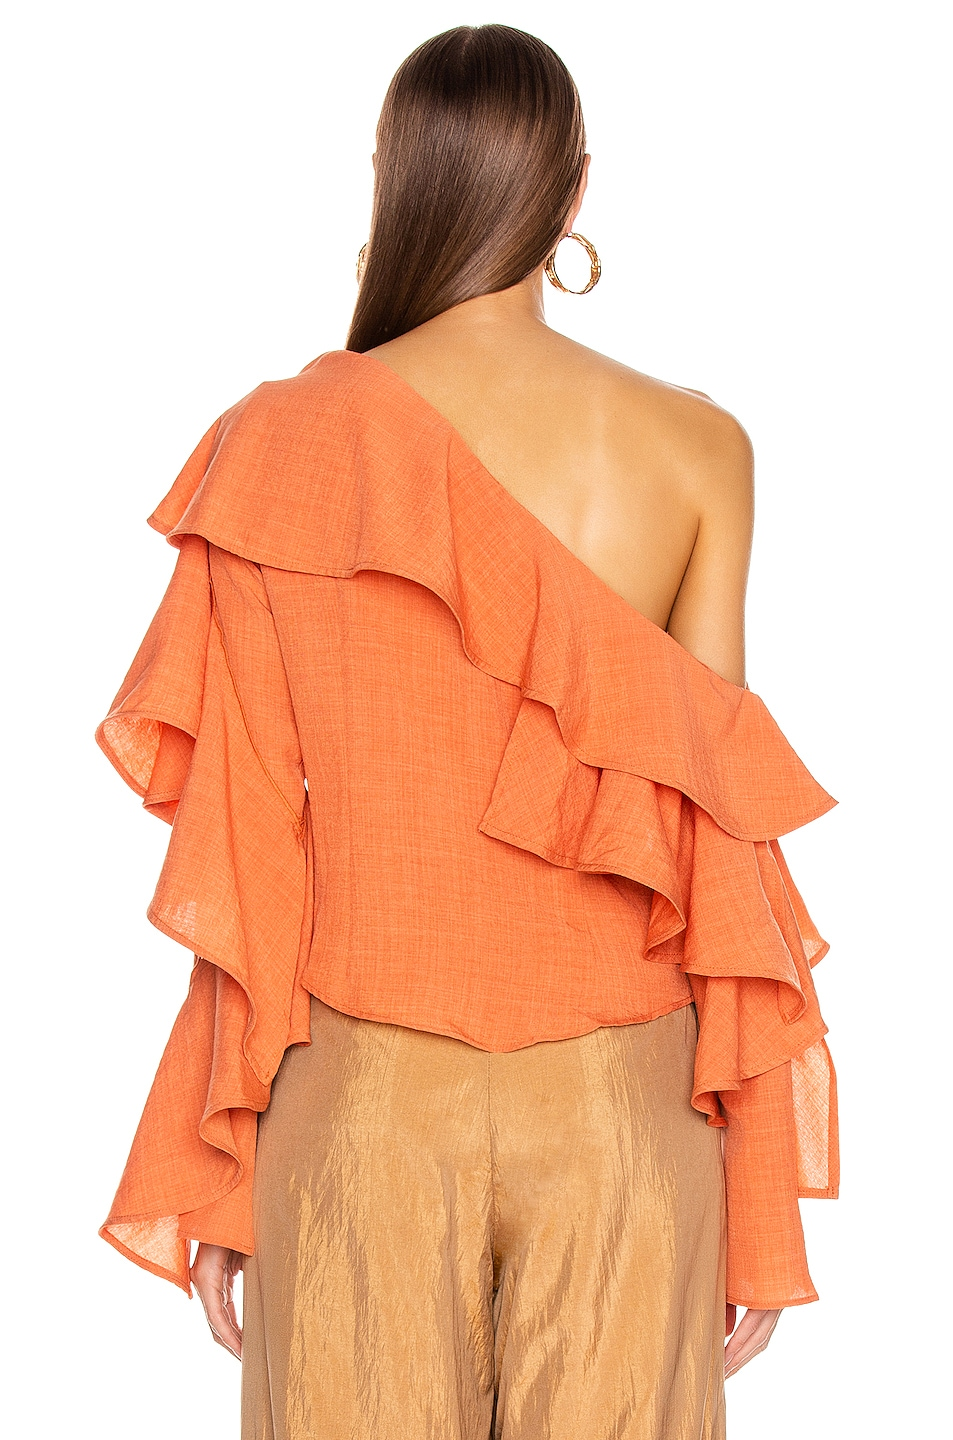 Image 4 of Atoir Give A Little Top in Sunset Orange